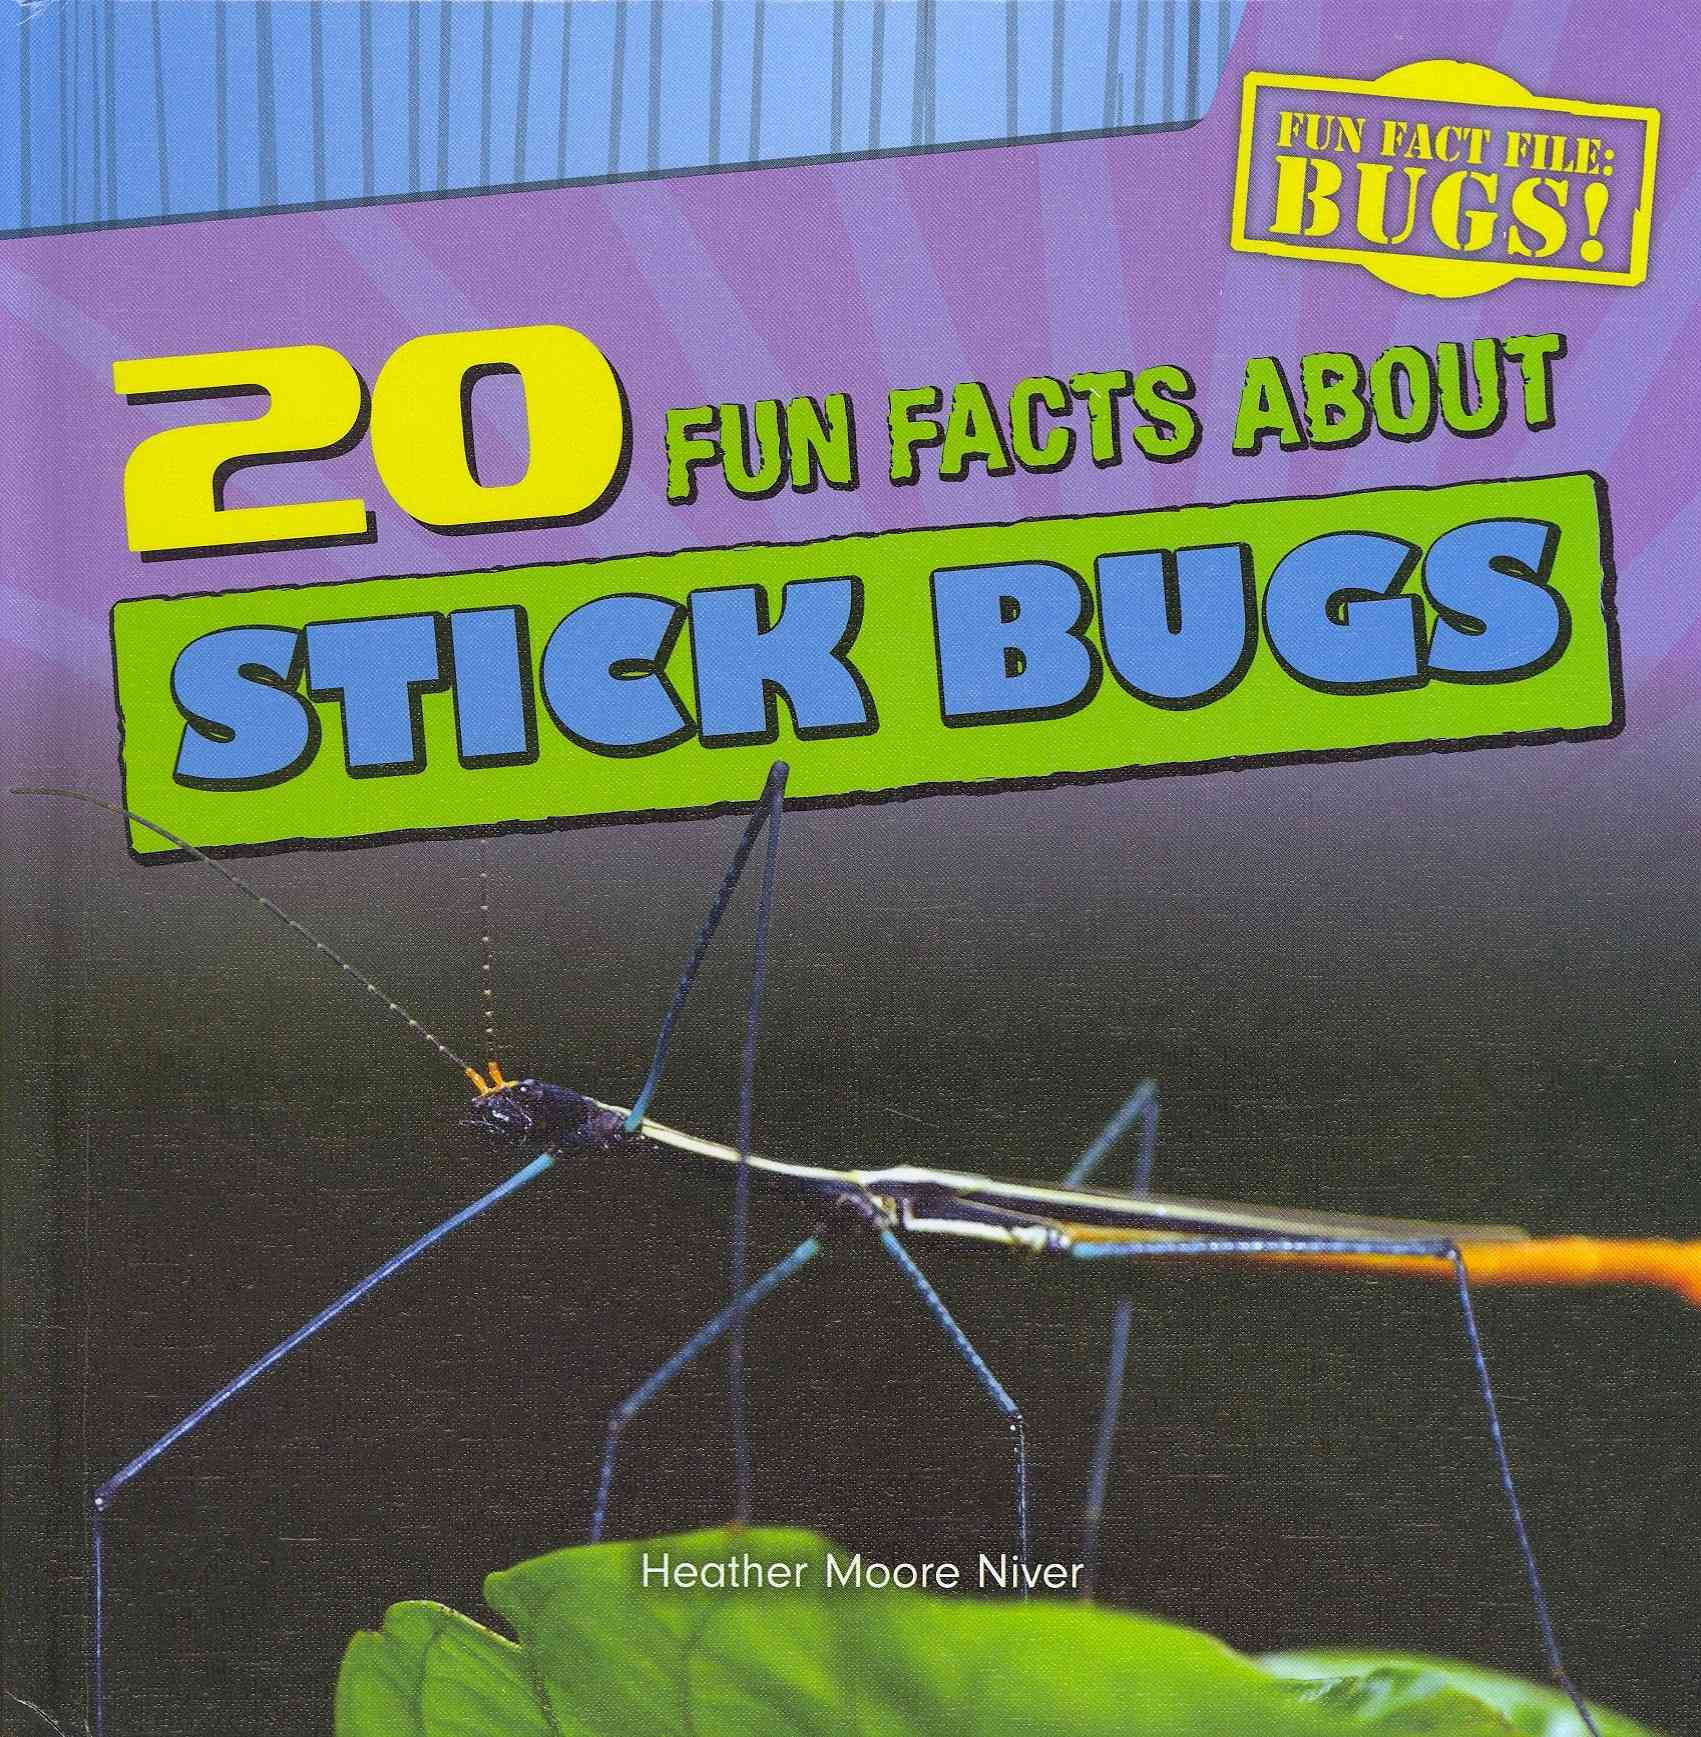 20 Fun Facts About Stick Bugs By Niver, Heather Moore